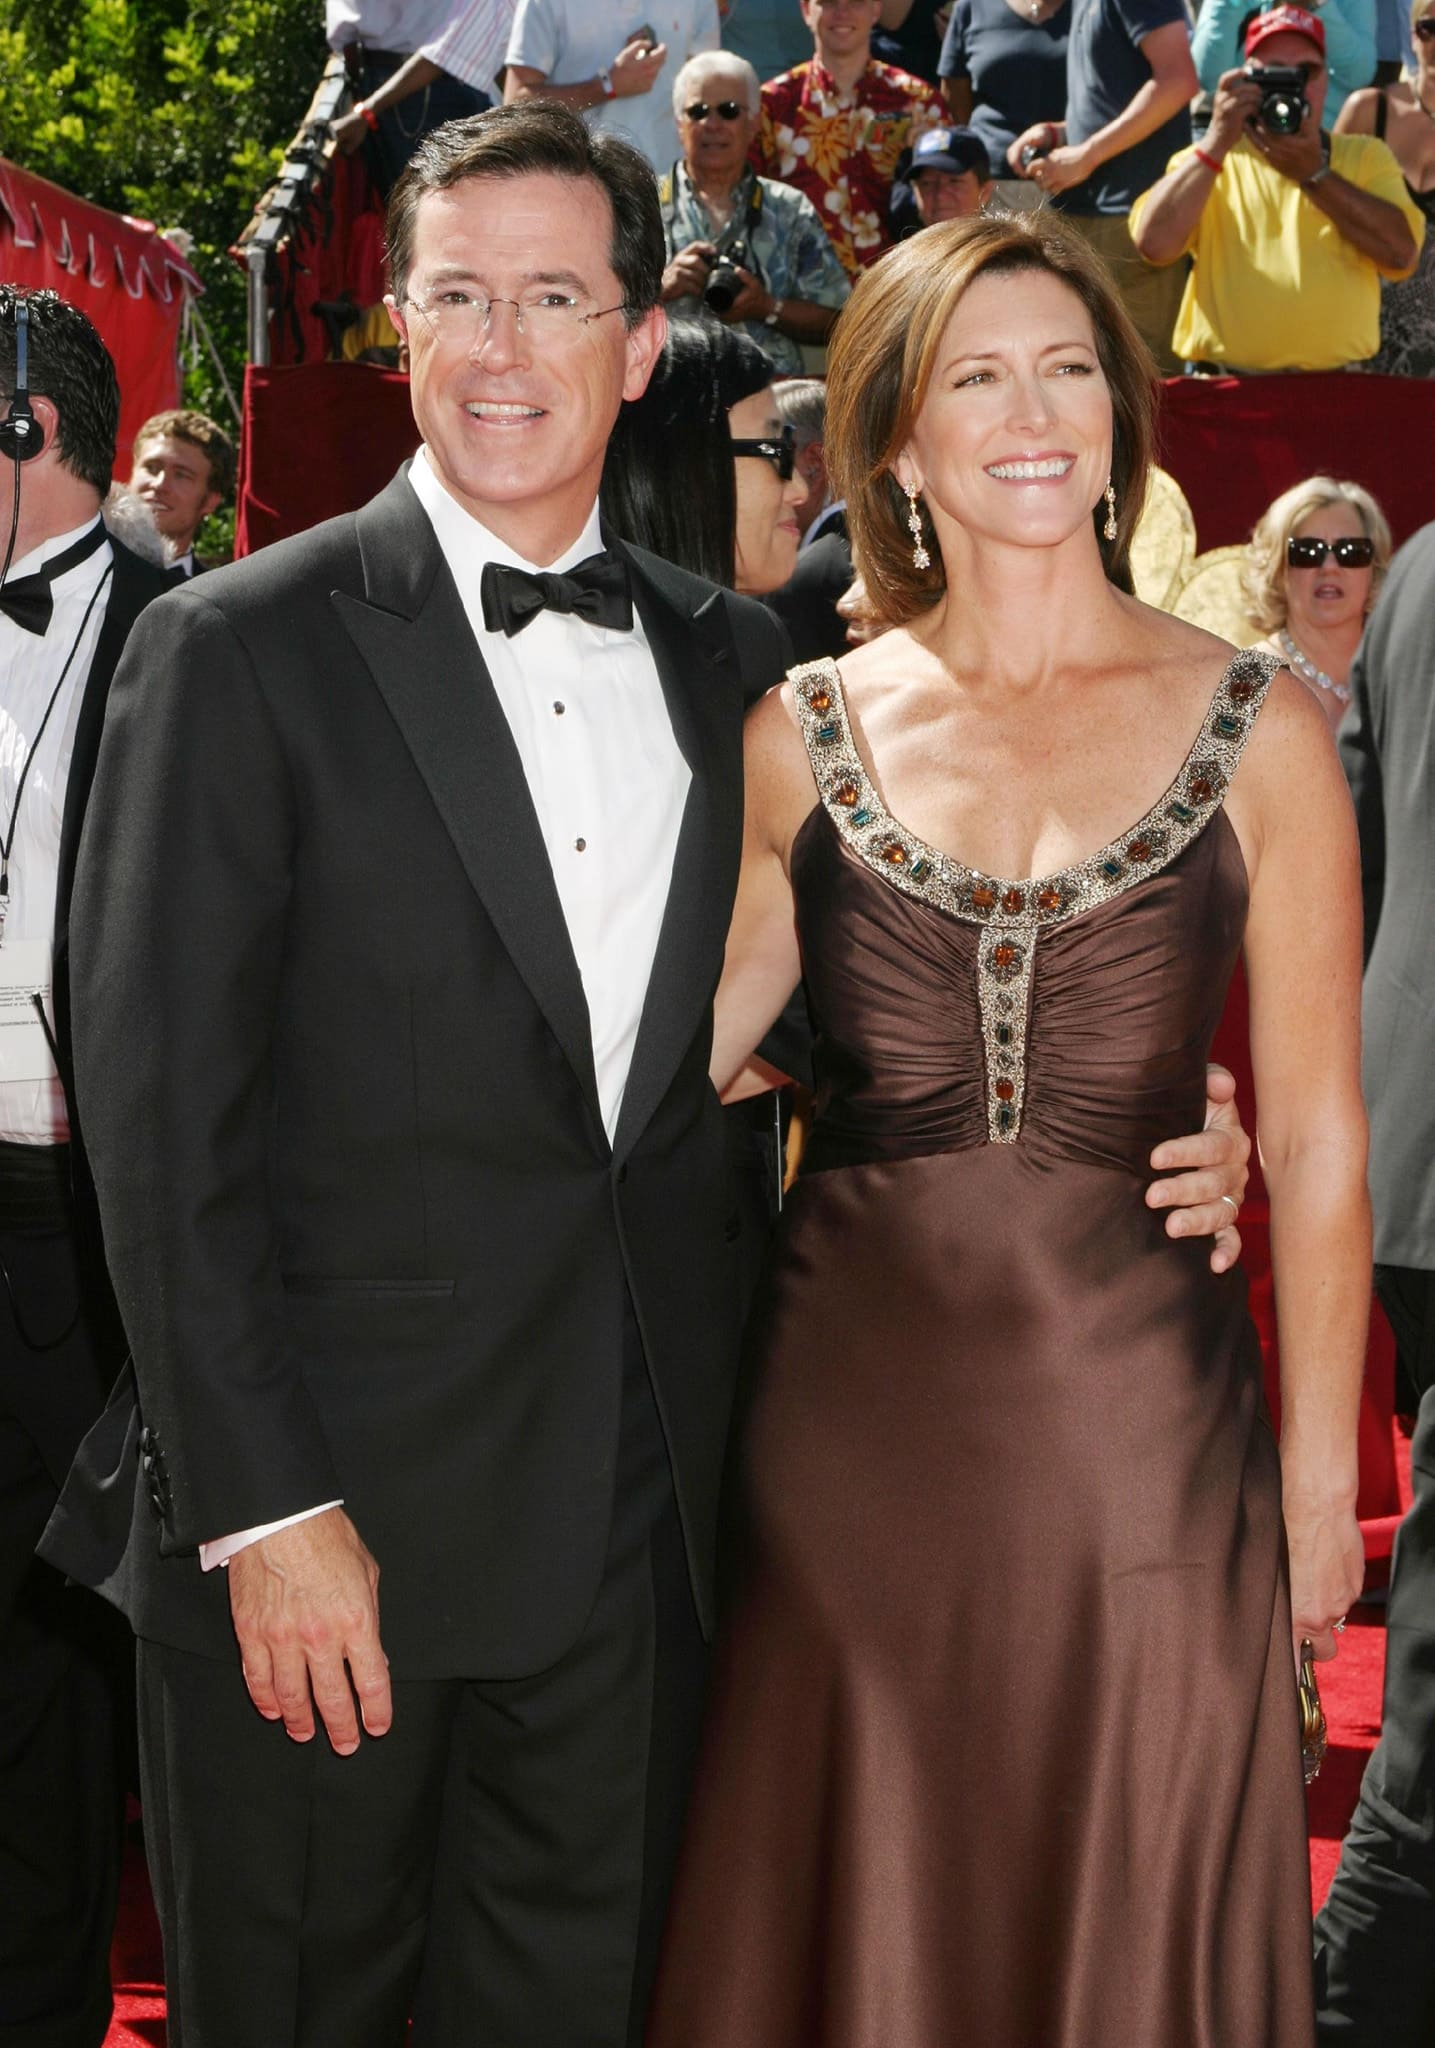 Stephen Colbert and Evelyn McGee met at the premiere of the Philip Glass and Allen Ginsberg chamber opera Hydrogen Jukebox